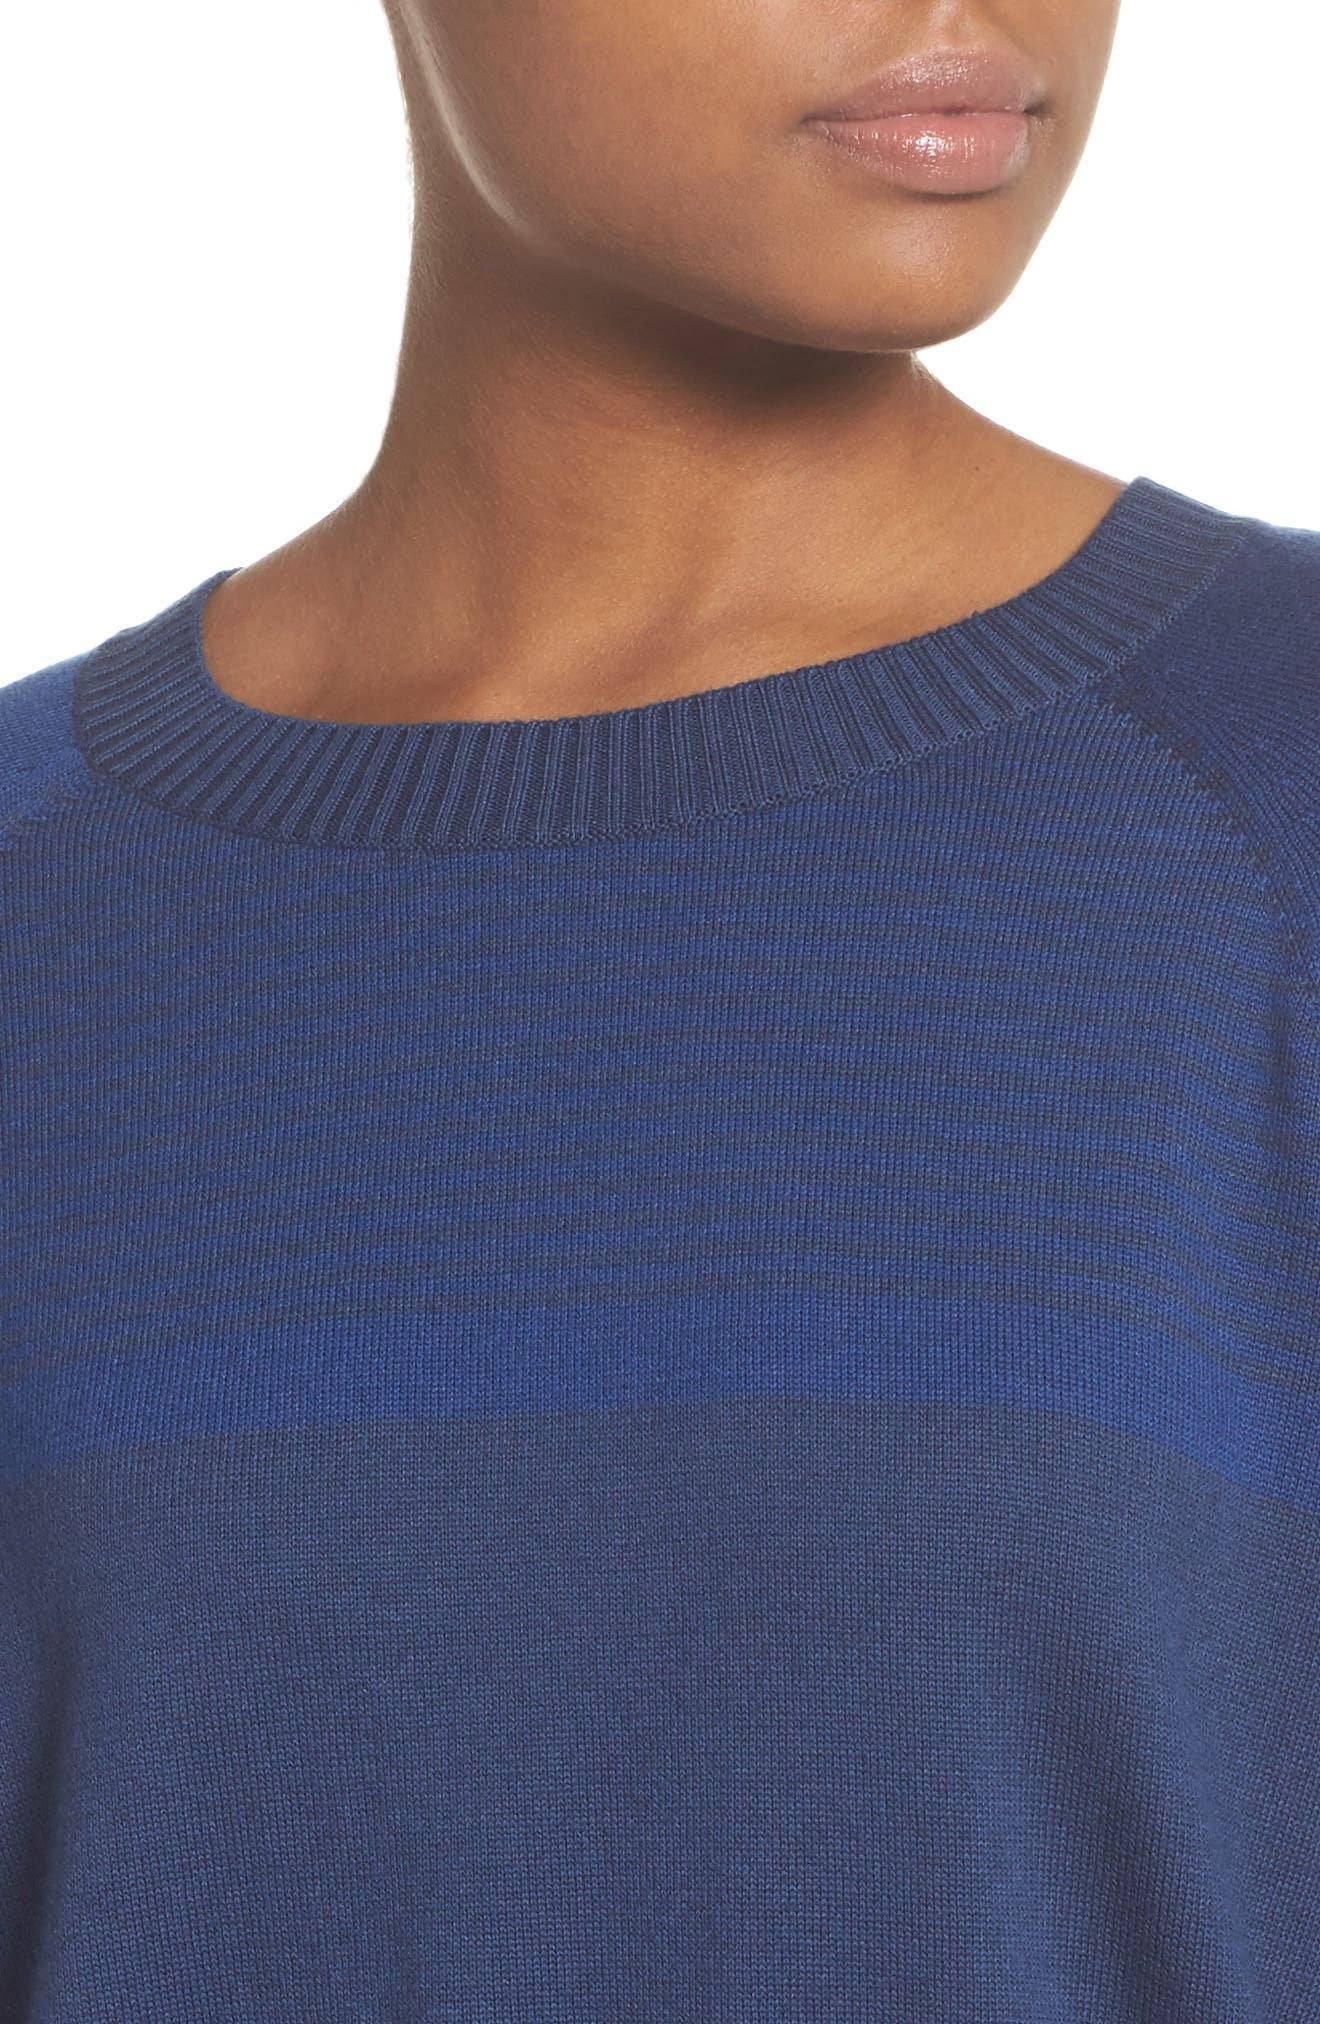 Prism Cropped Sweater,                             Alternate thumbnail 4, color,                             Blue